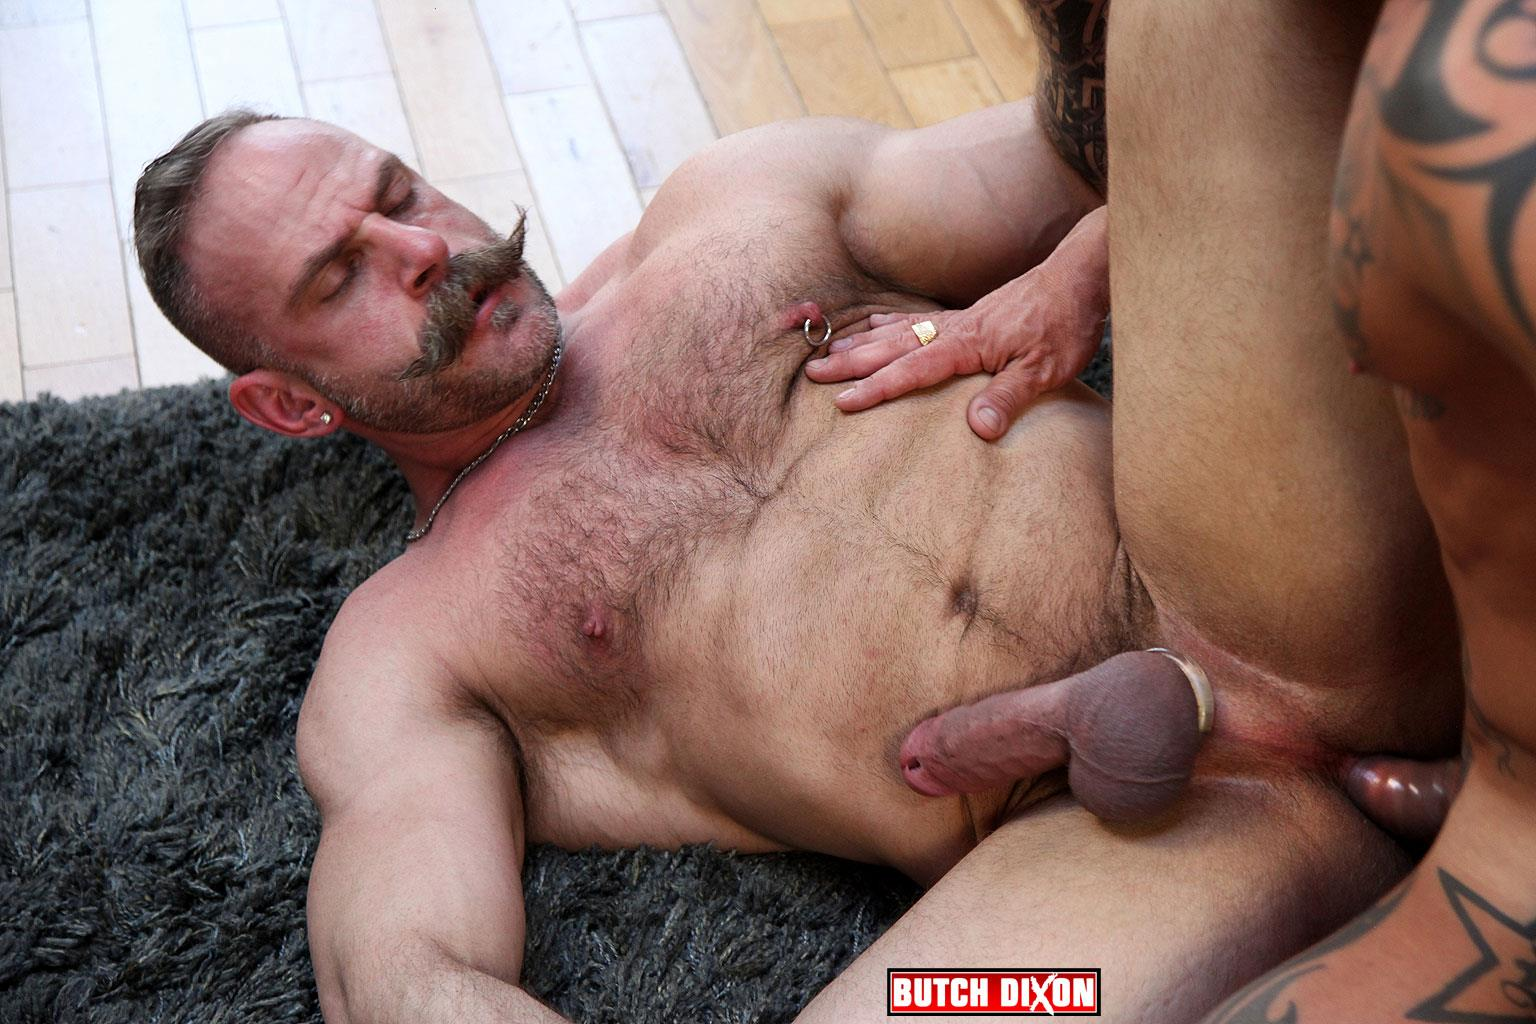 Butch-Dixon-Samuel-Colt-and-Frank-Valencia-Hairy-Muscle-Daddy-Getting-Fucked-By-Latino-Cock-Amateur-Gay-Porn-13 Happy Fathers Day: Hairy Muscle Daddy Samuel Colt Taking A Big Cock Up The Ass